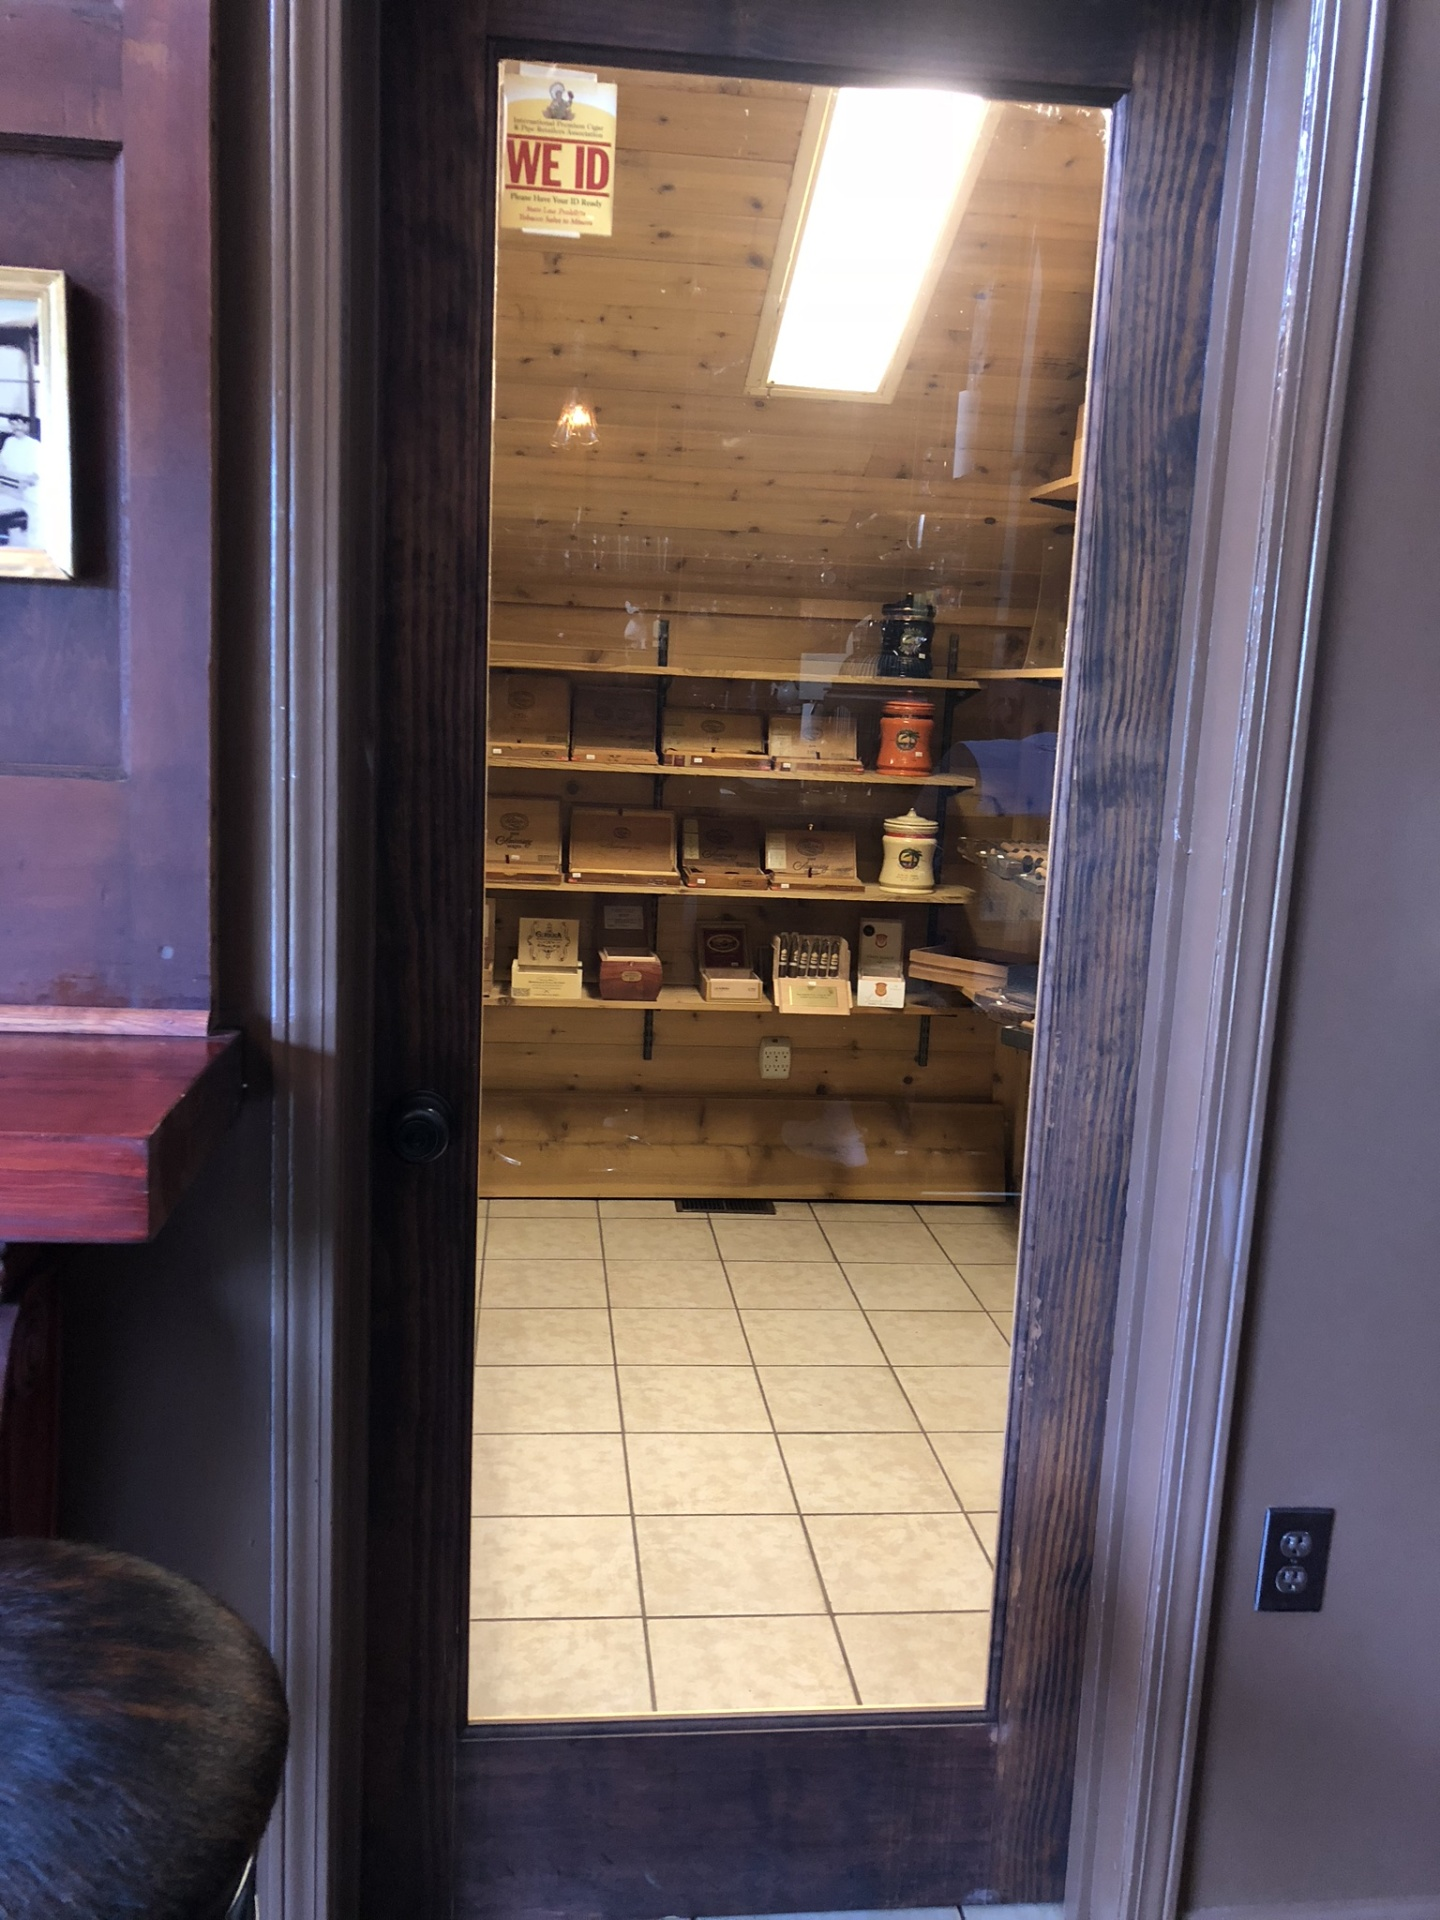 The Walk-in Humidor